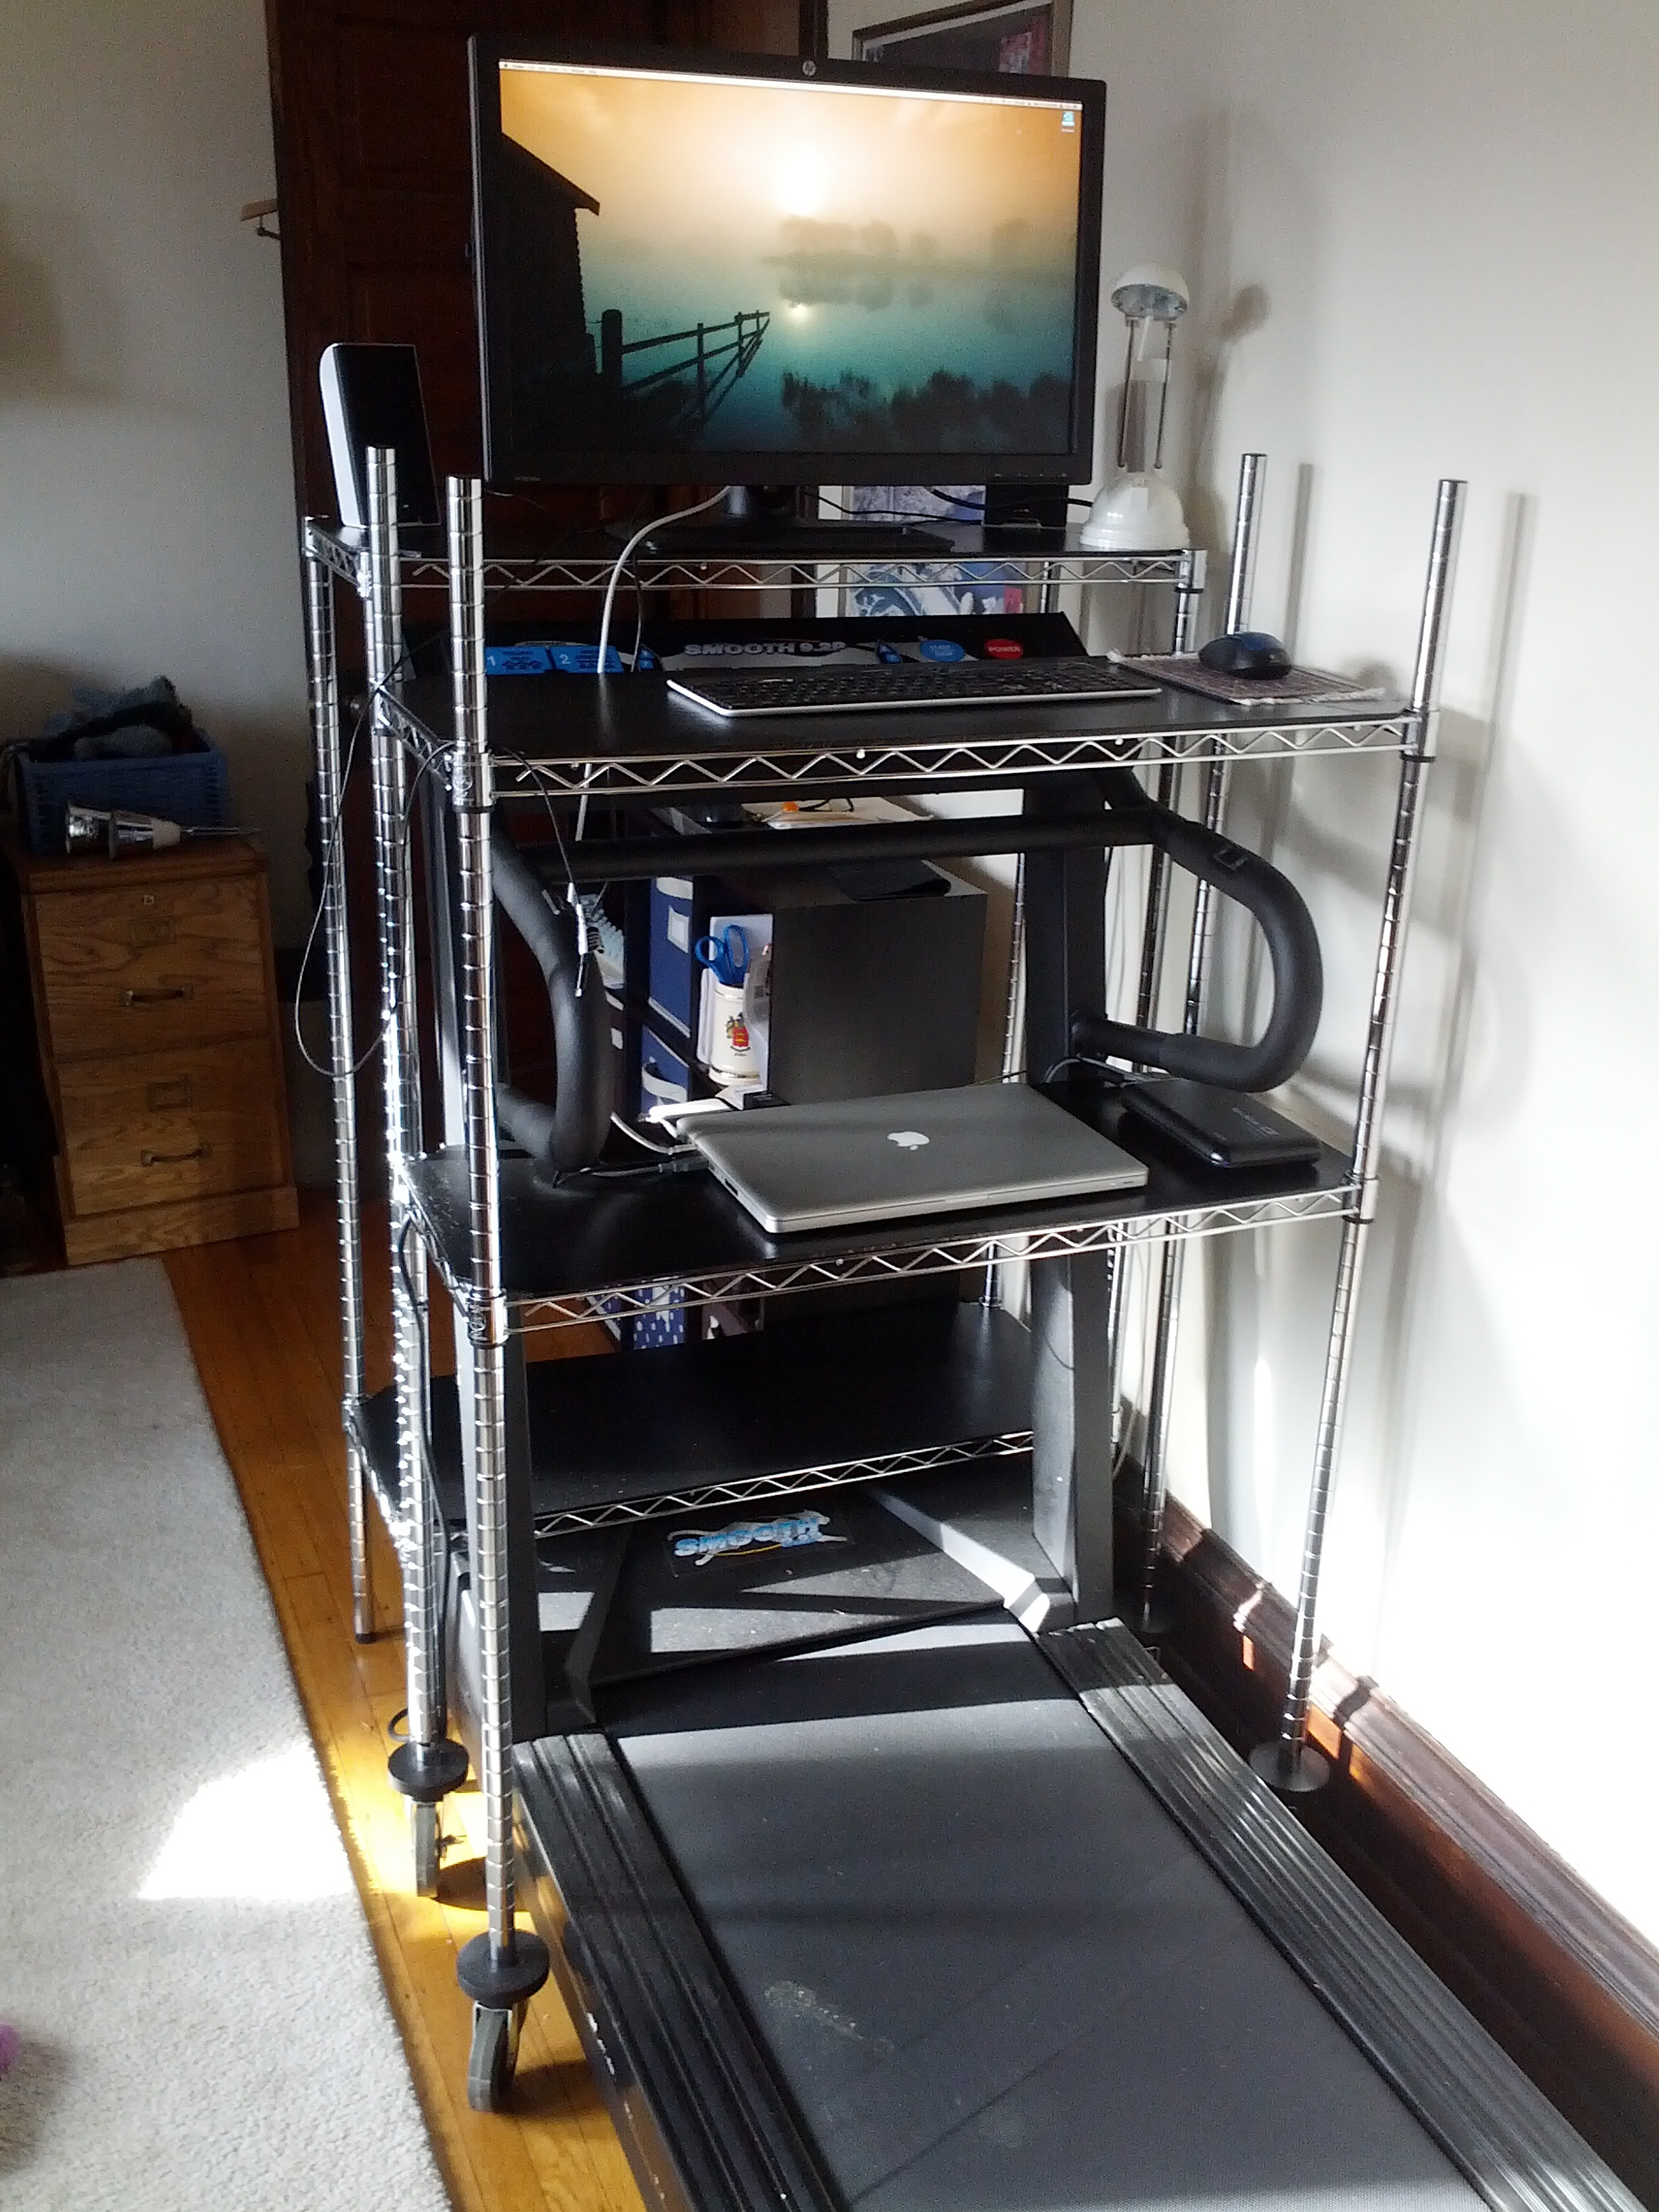 Behold, my walking desk with wire shelves.